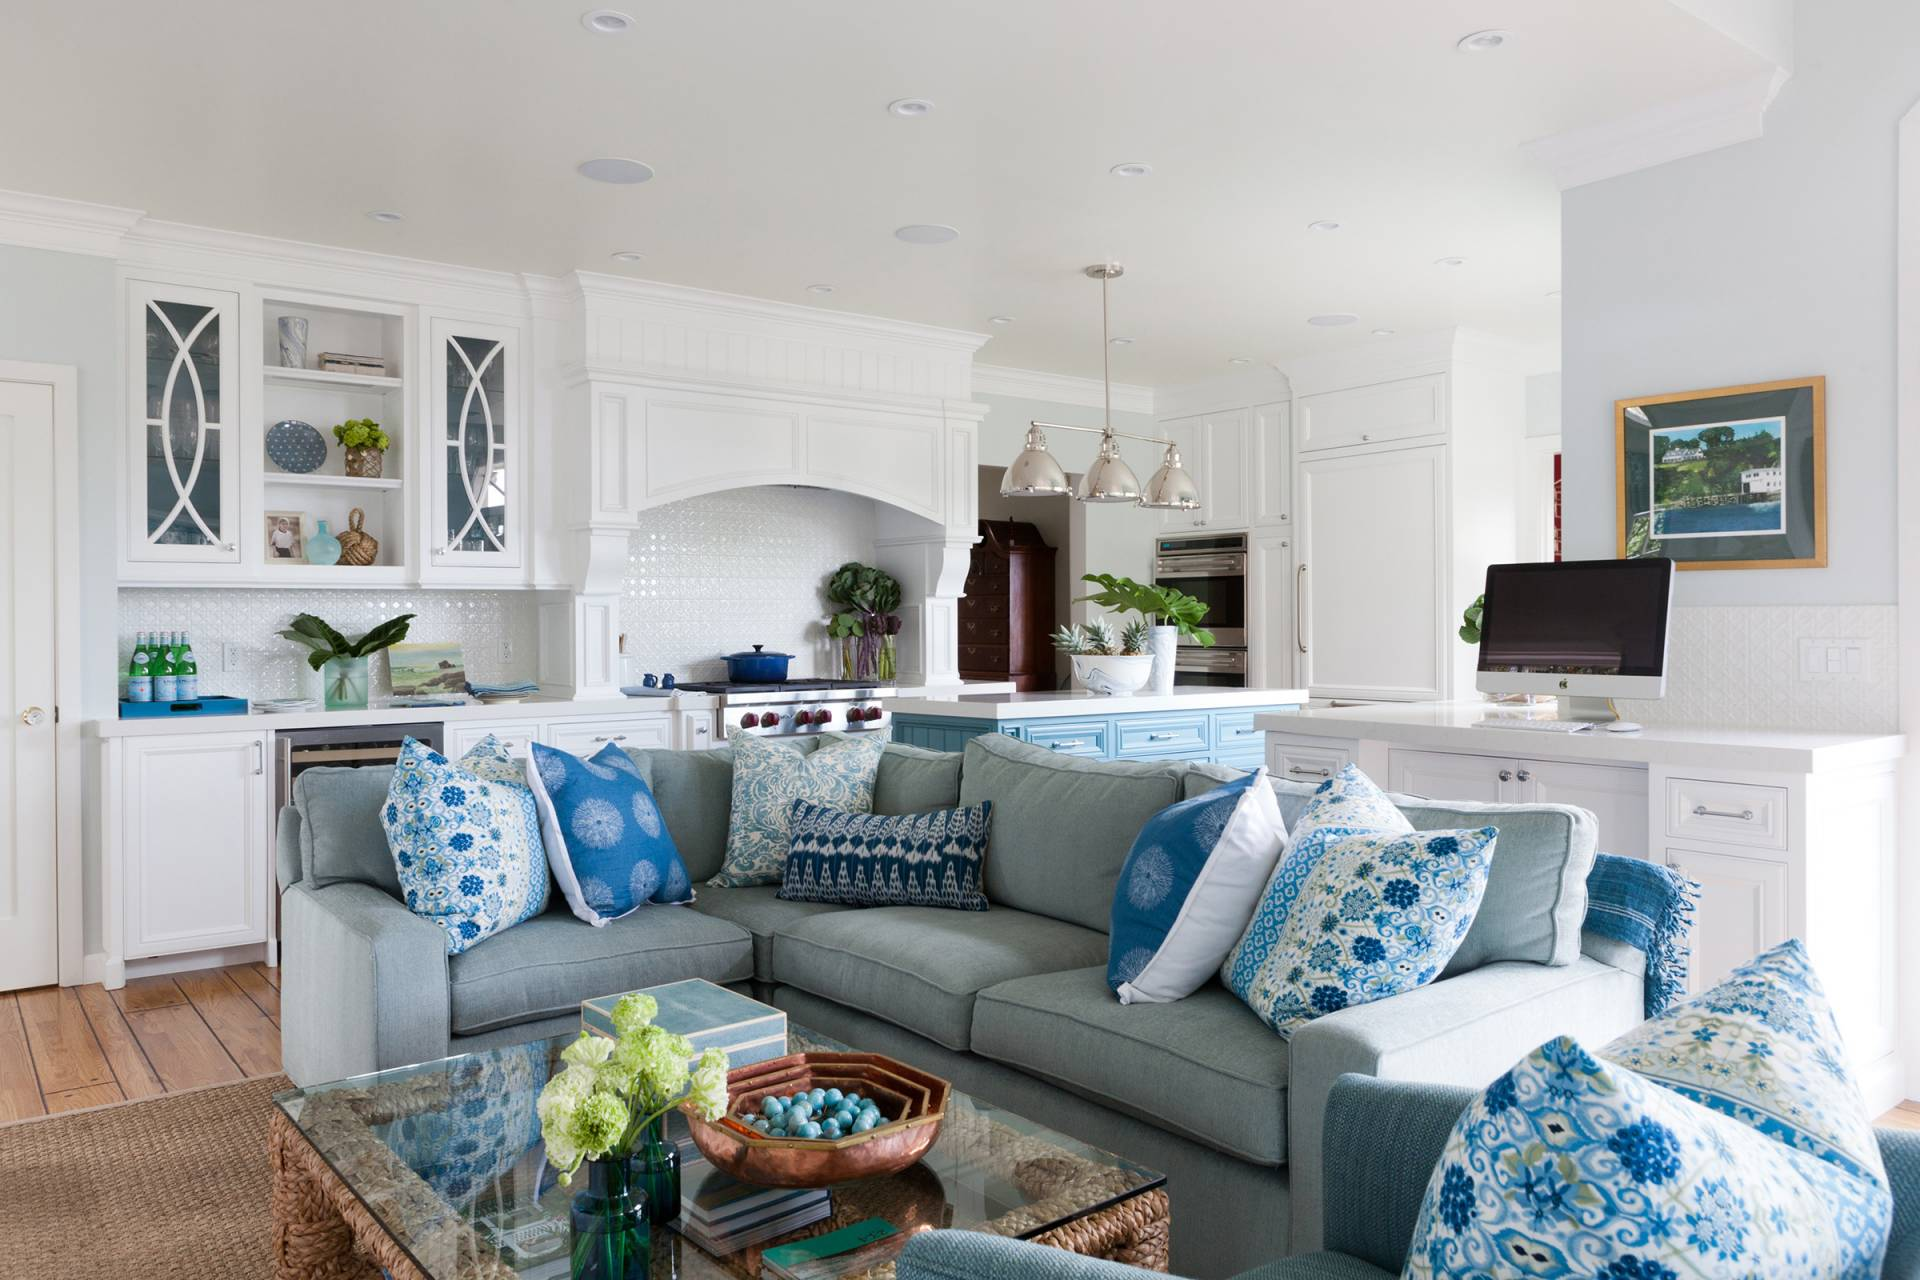 Open floor plan upholstered sofa in kitchen with shams